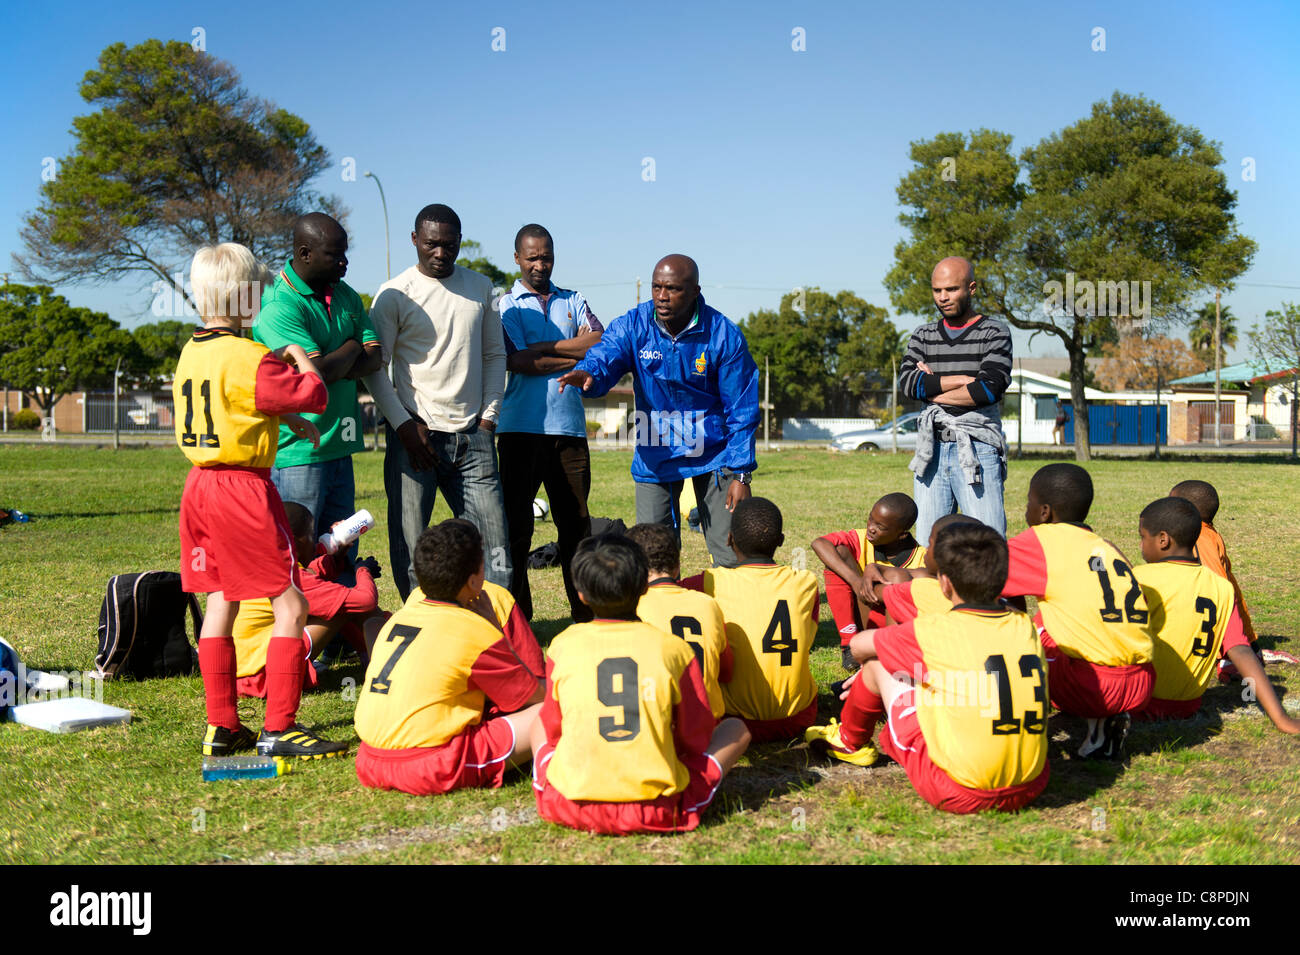 Football coach instructs junior team during half-time break Cape Town South Africa - Stock Image